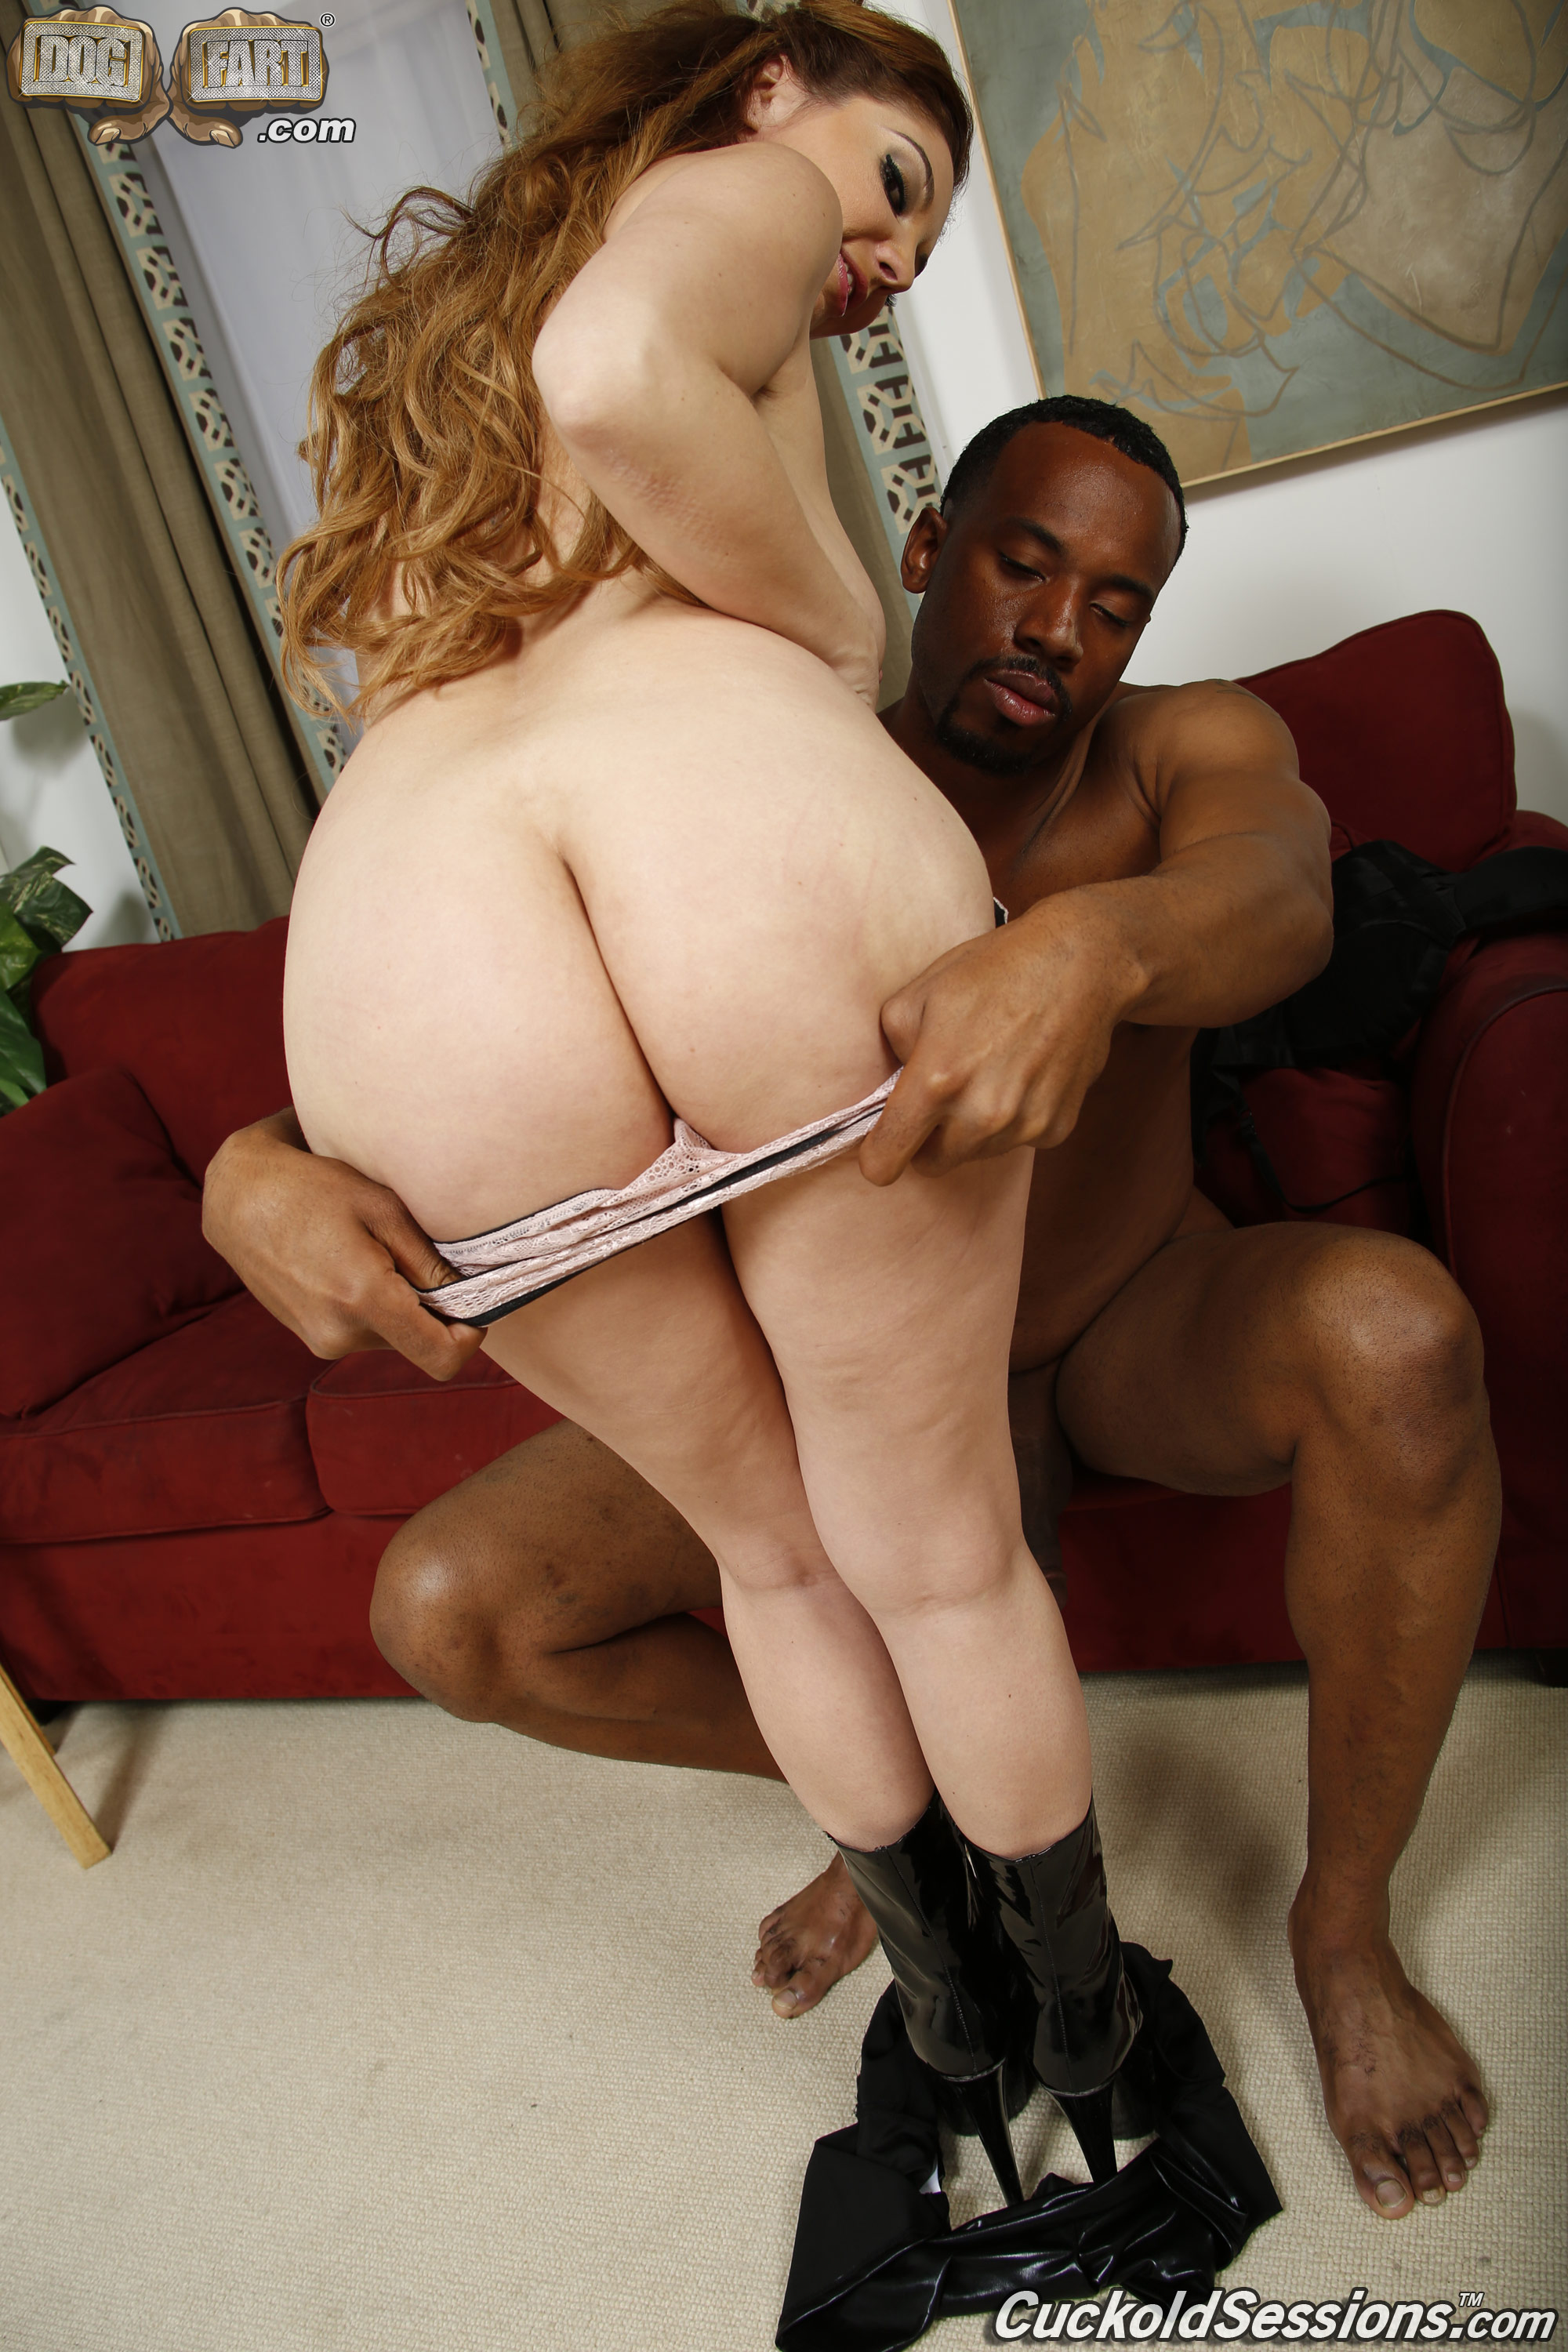 galleries CuckoldSessions content kiki daire pic 14